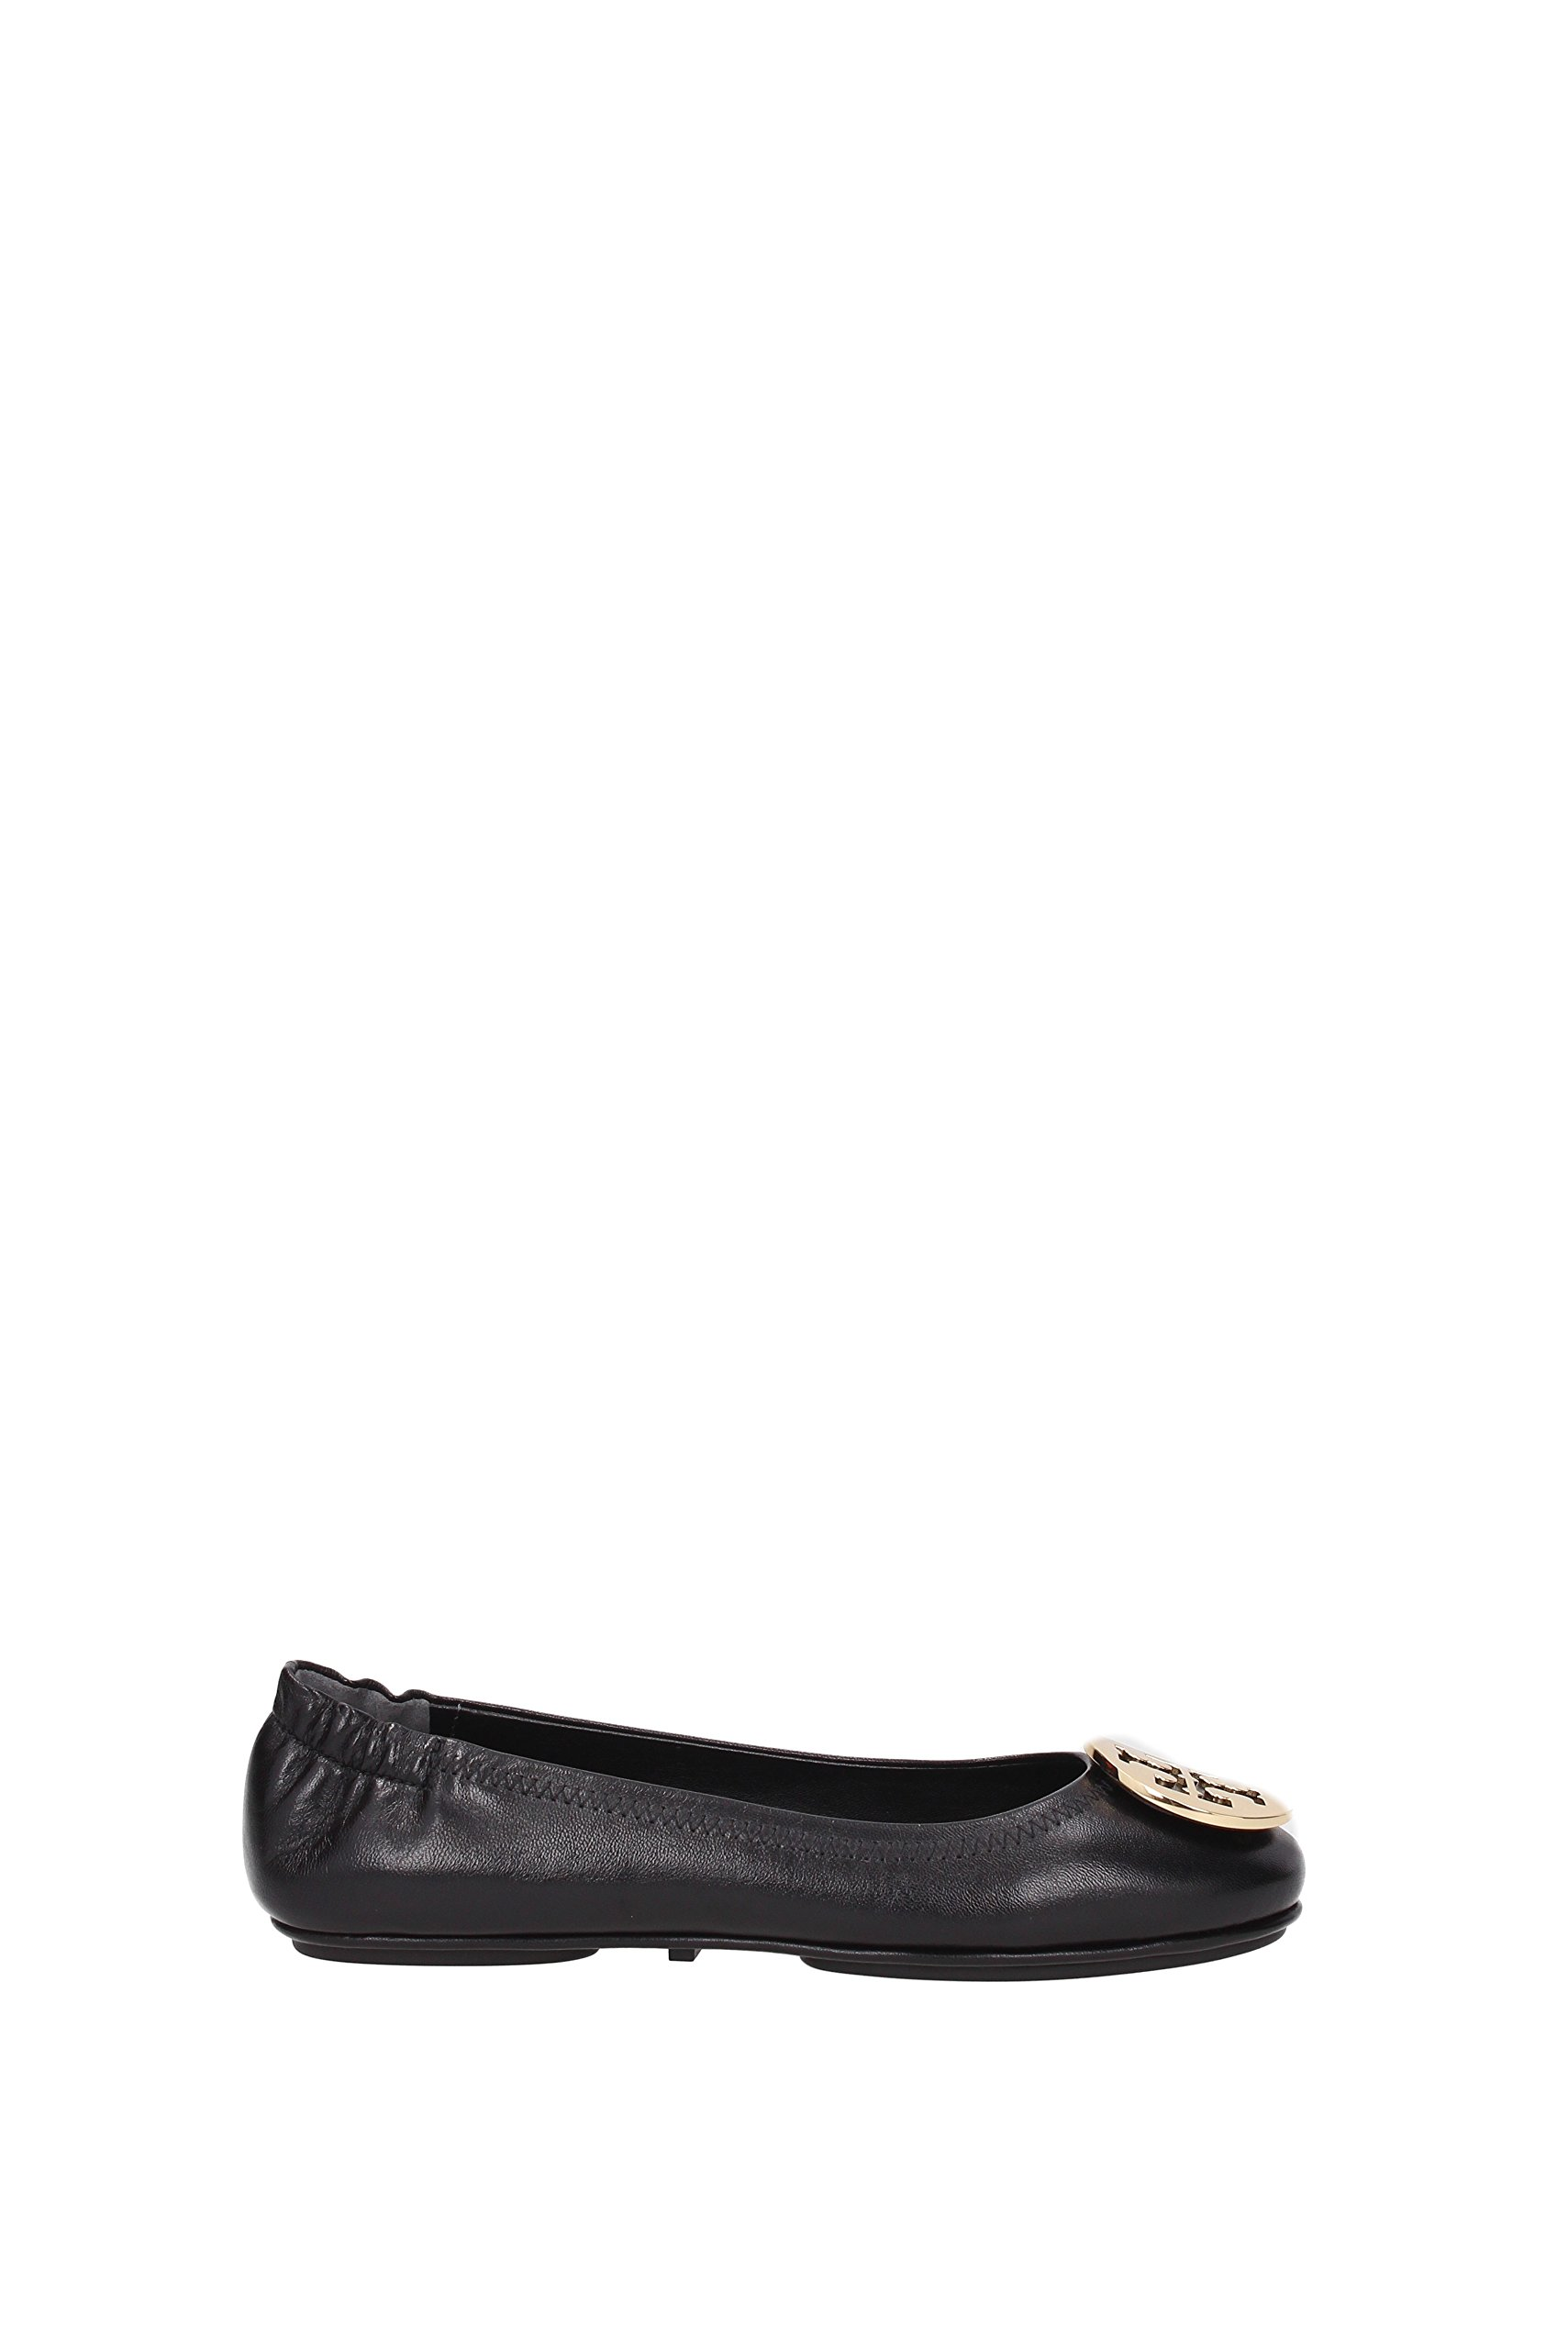 Tory Burch Minnie Travel Leather Ballet Flat - Size 9, Black/Gold by Tory Burch